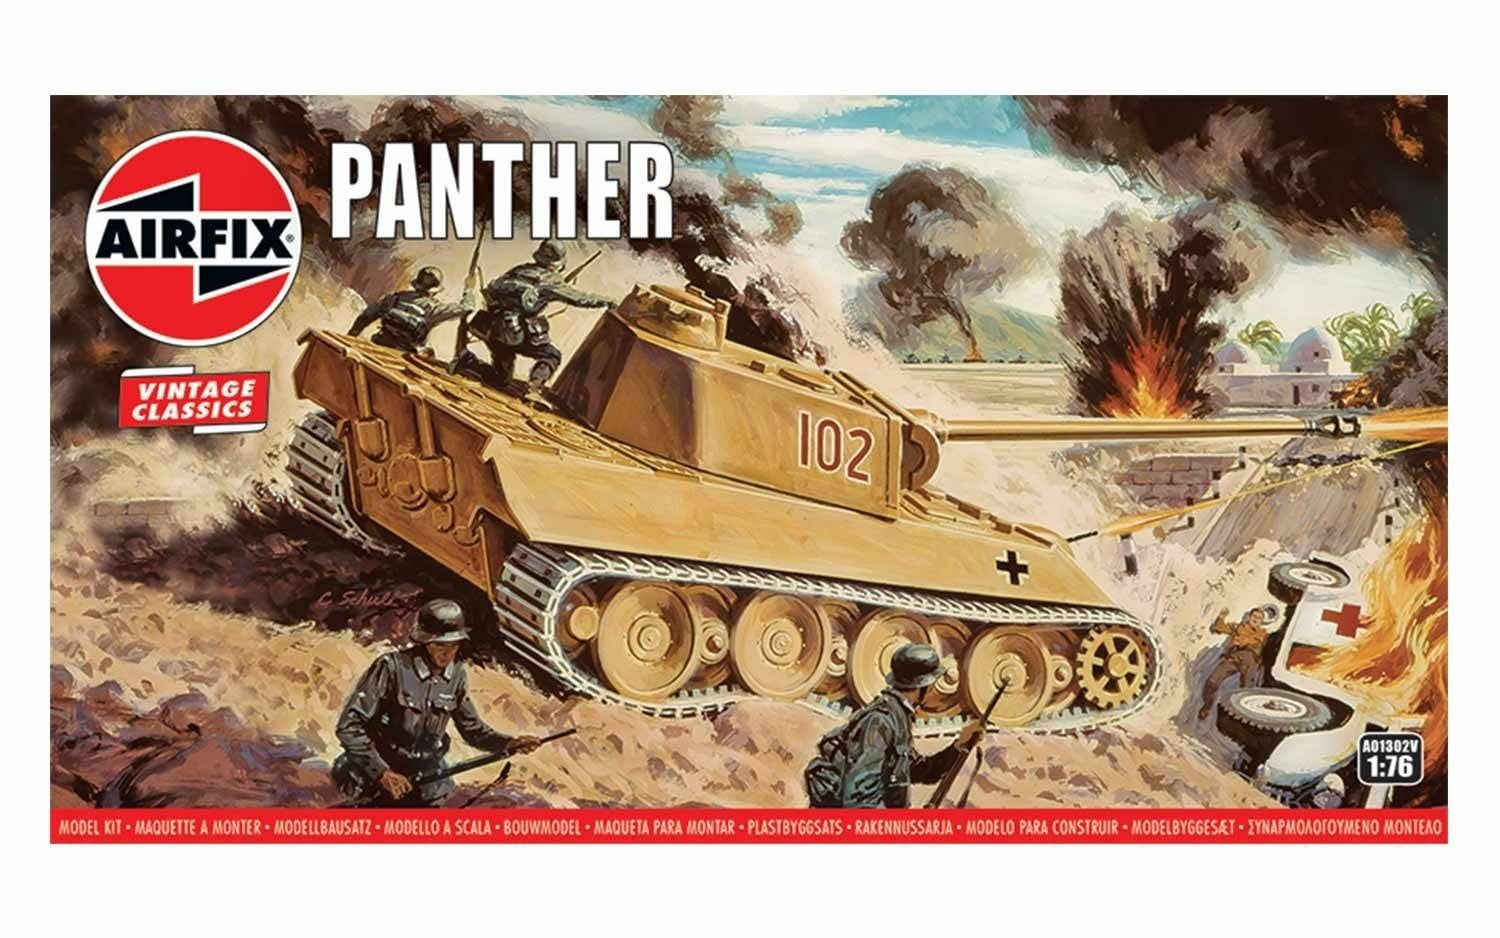 Airfix Panther 1:76 Scale Plastic Model Kit